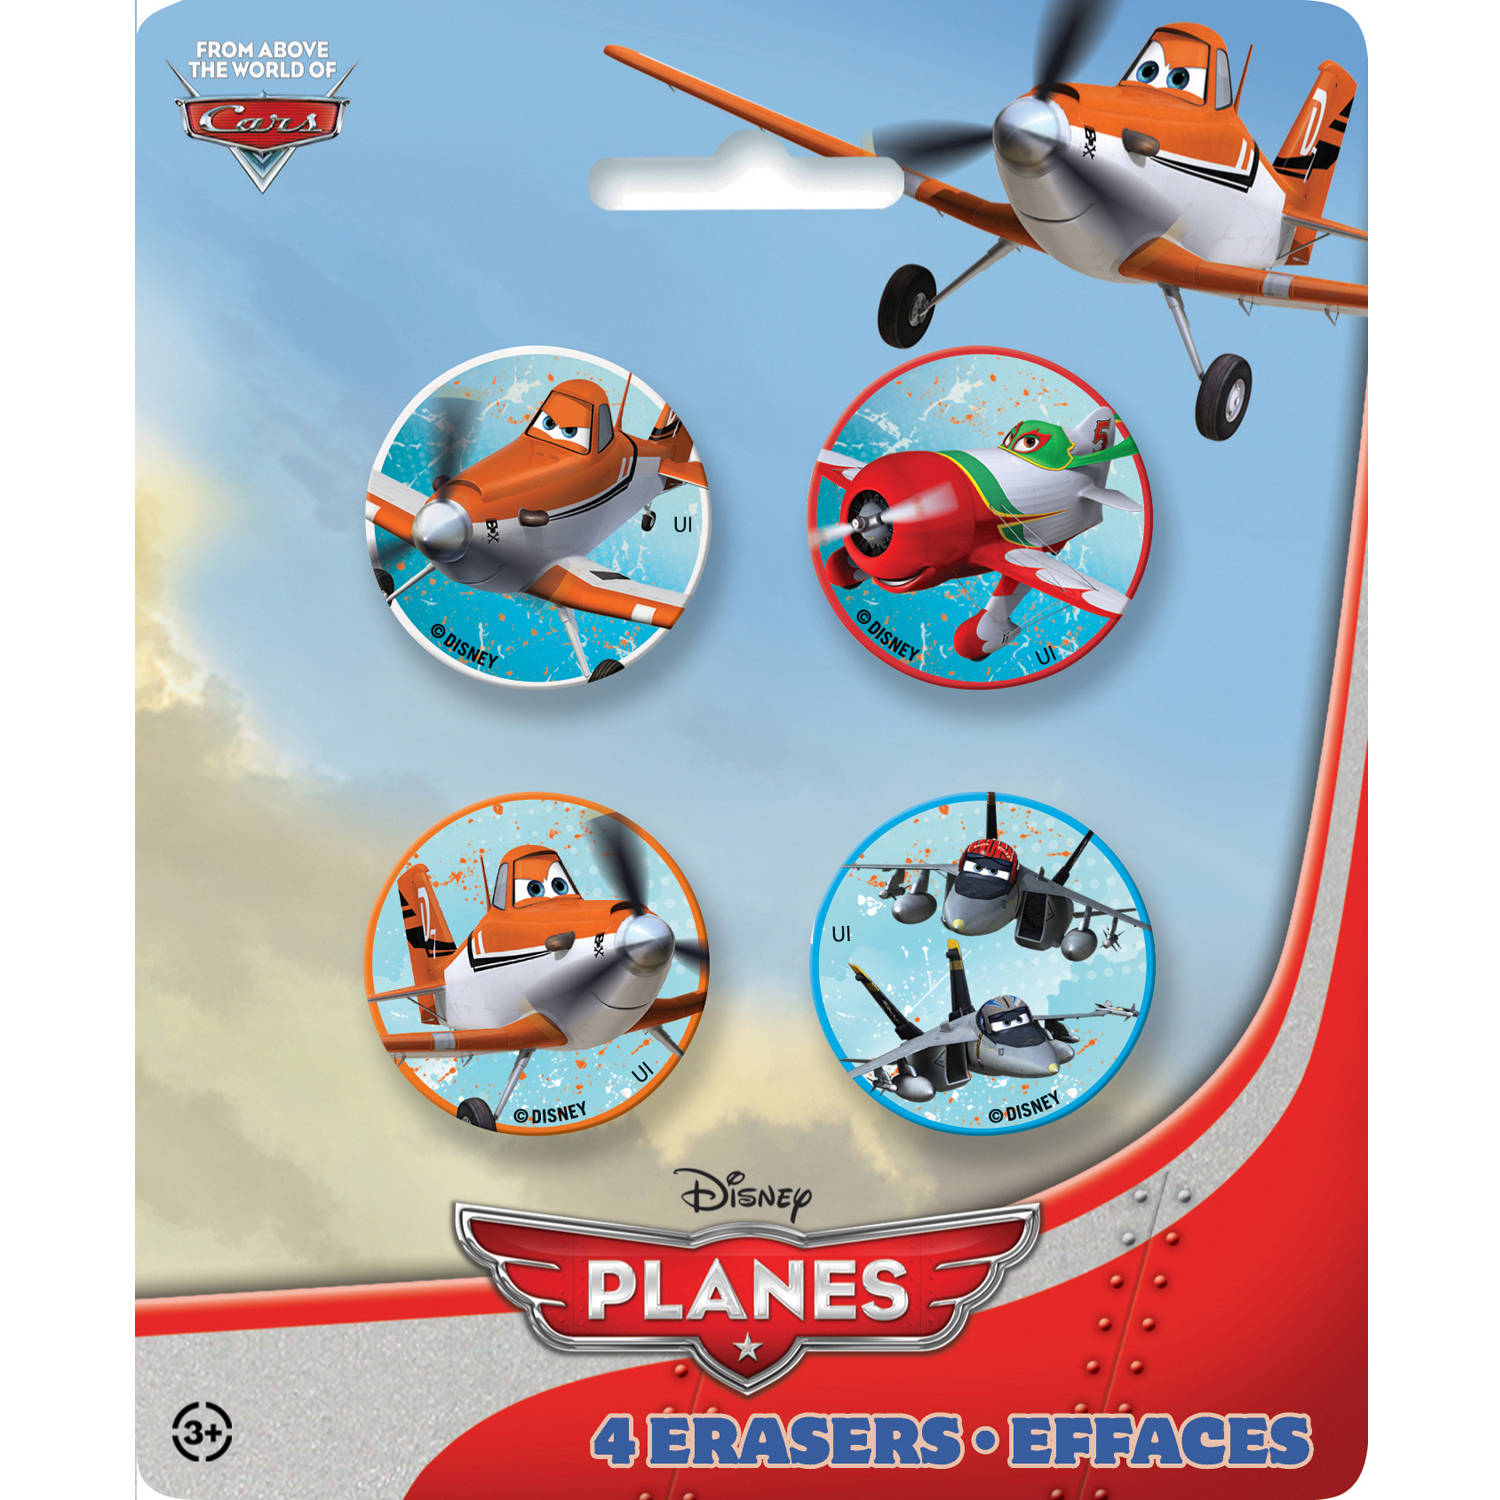 Disney Planes Eraser Party Favors, 4-Count